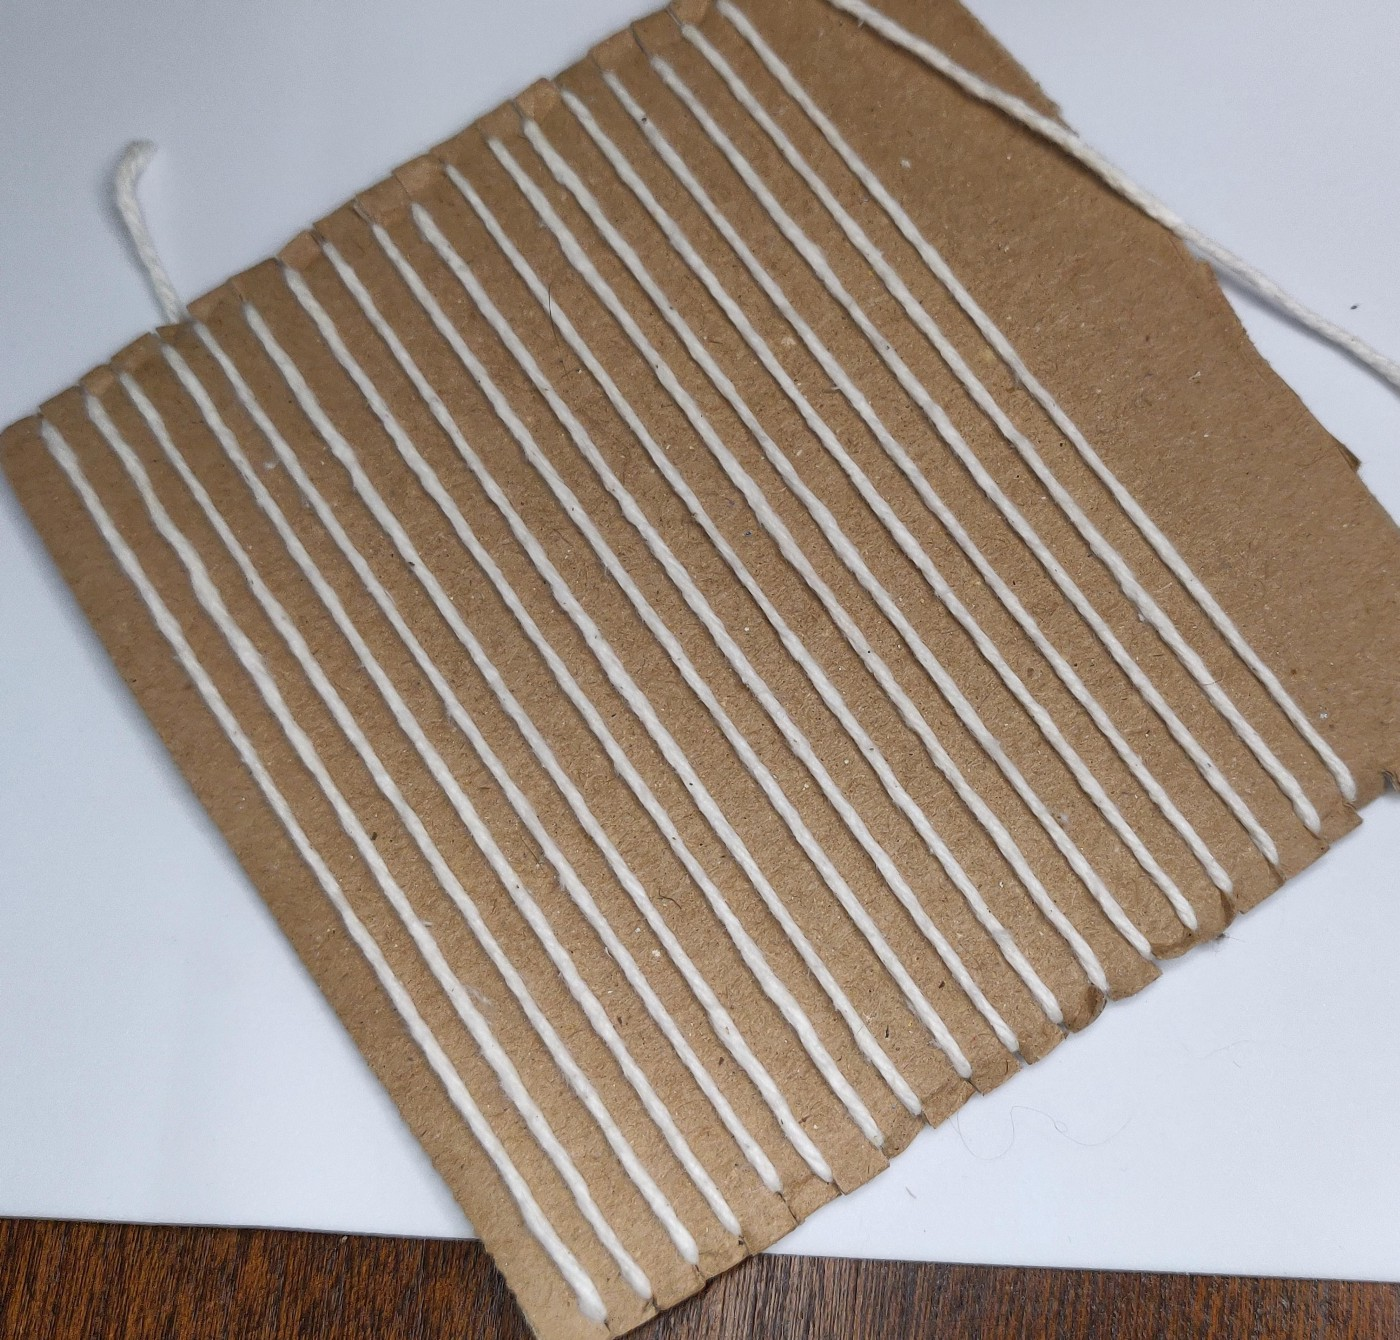 A mostly warped cardboard loom viewed from the front